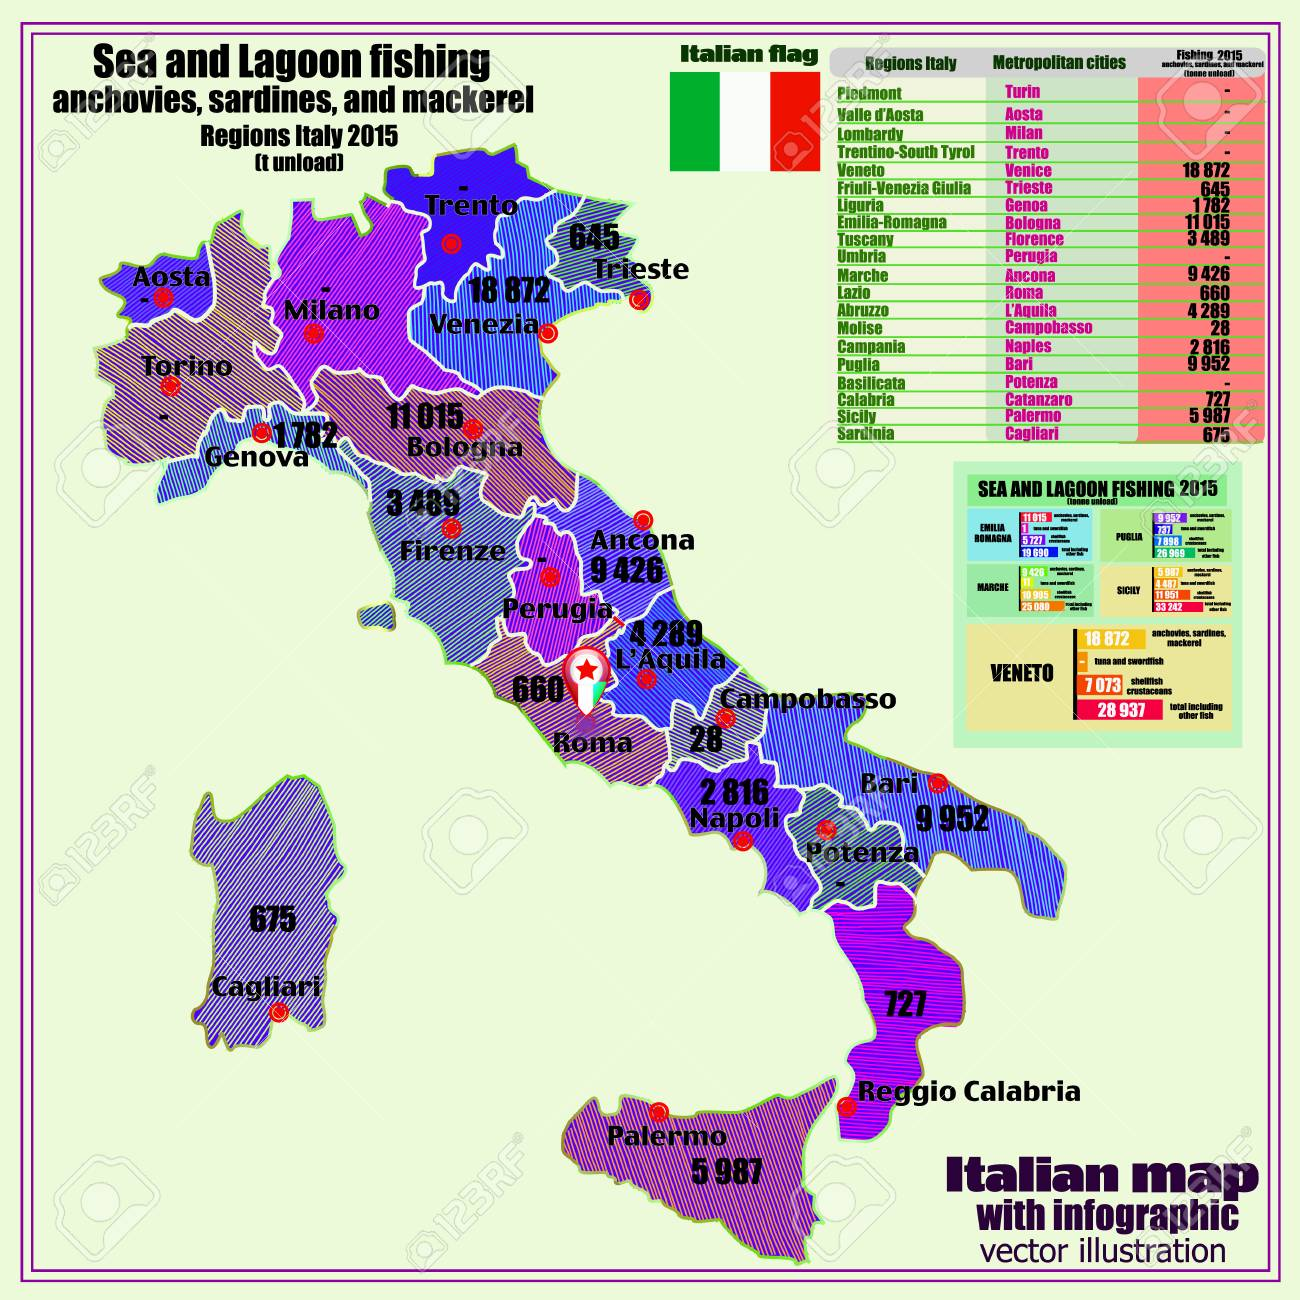 Map Of Italy Cities And Regions.Map Of Italy With Infographic Sea And Lagoon Fishing Italy Map